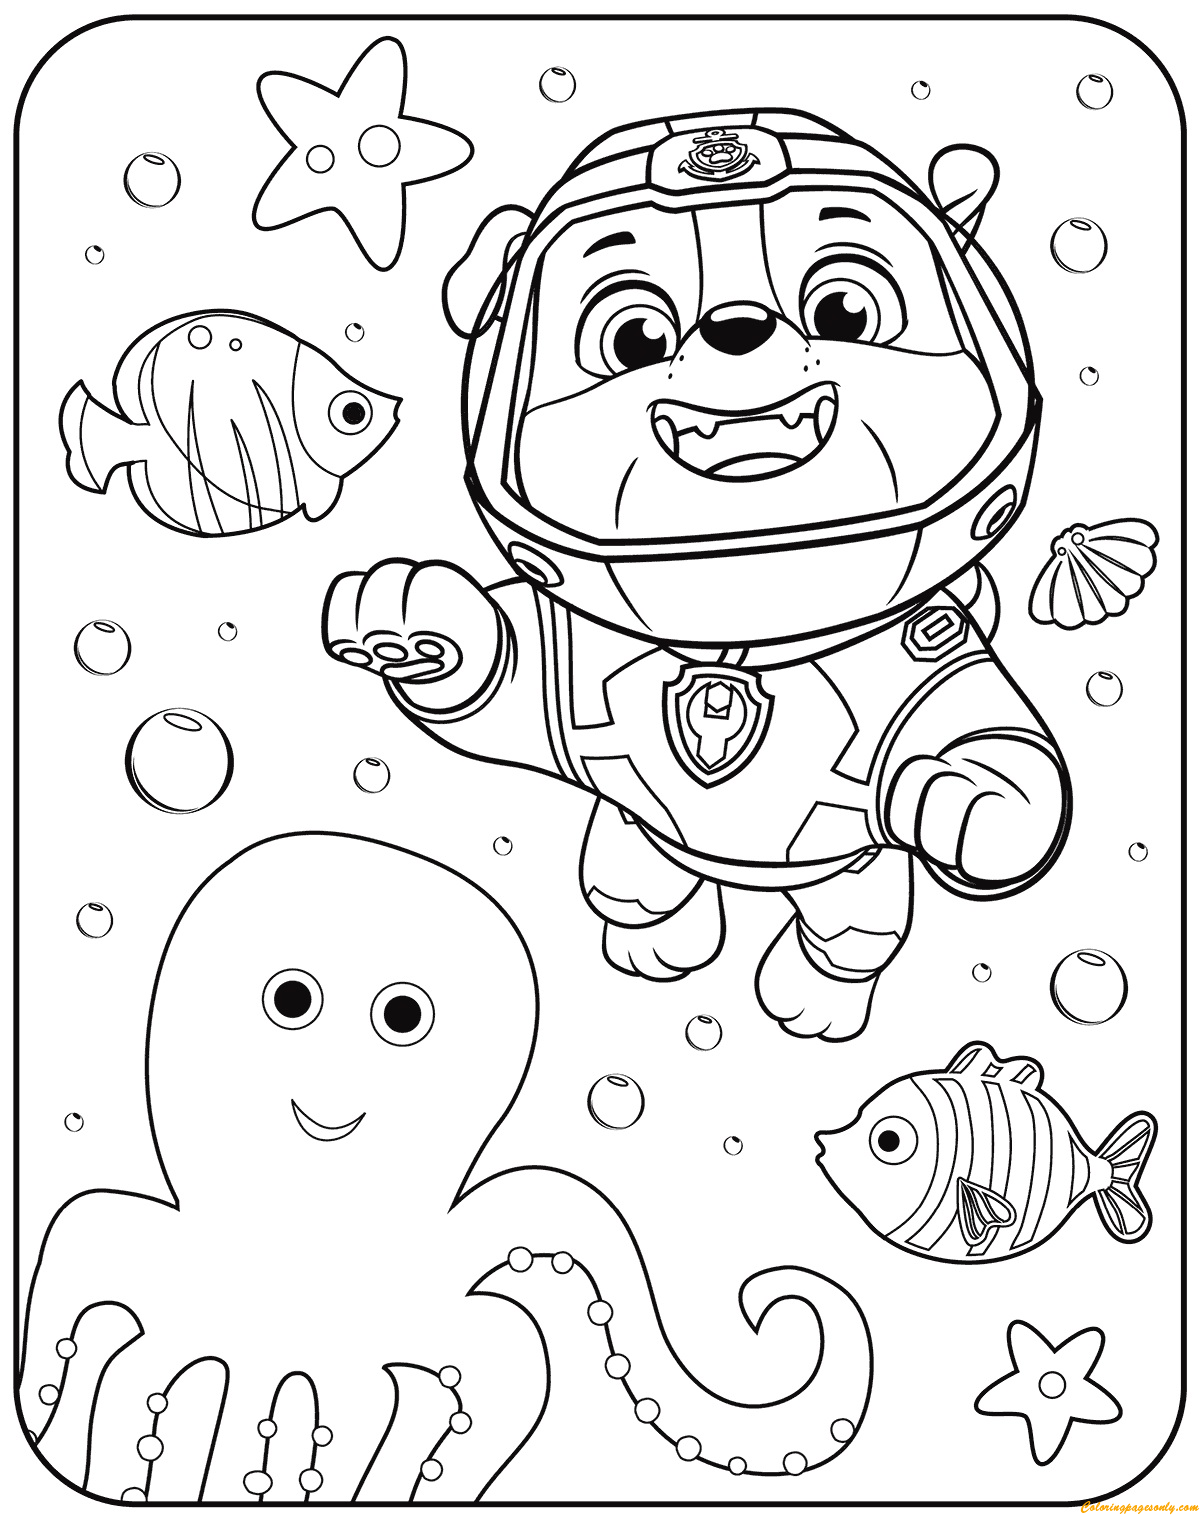 Paw Patrol Rubble Underwater Coloring Pages Cartoons Coloring Pages Free Printable Coloring Pages Online